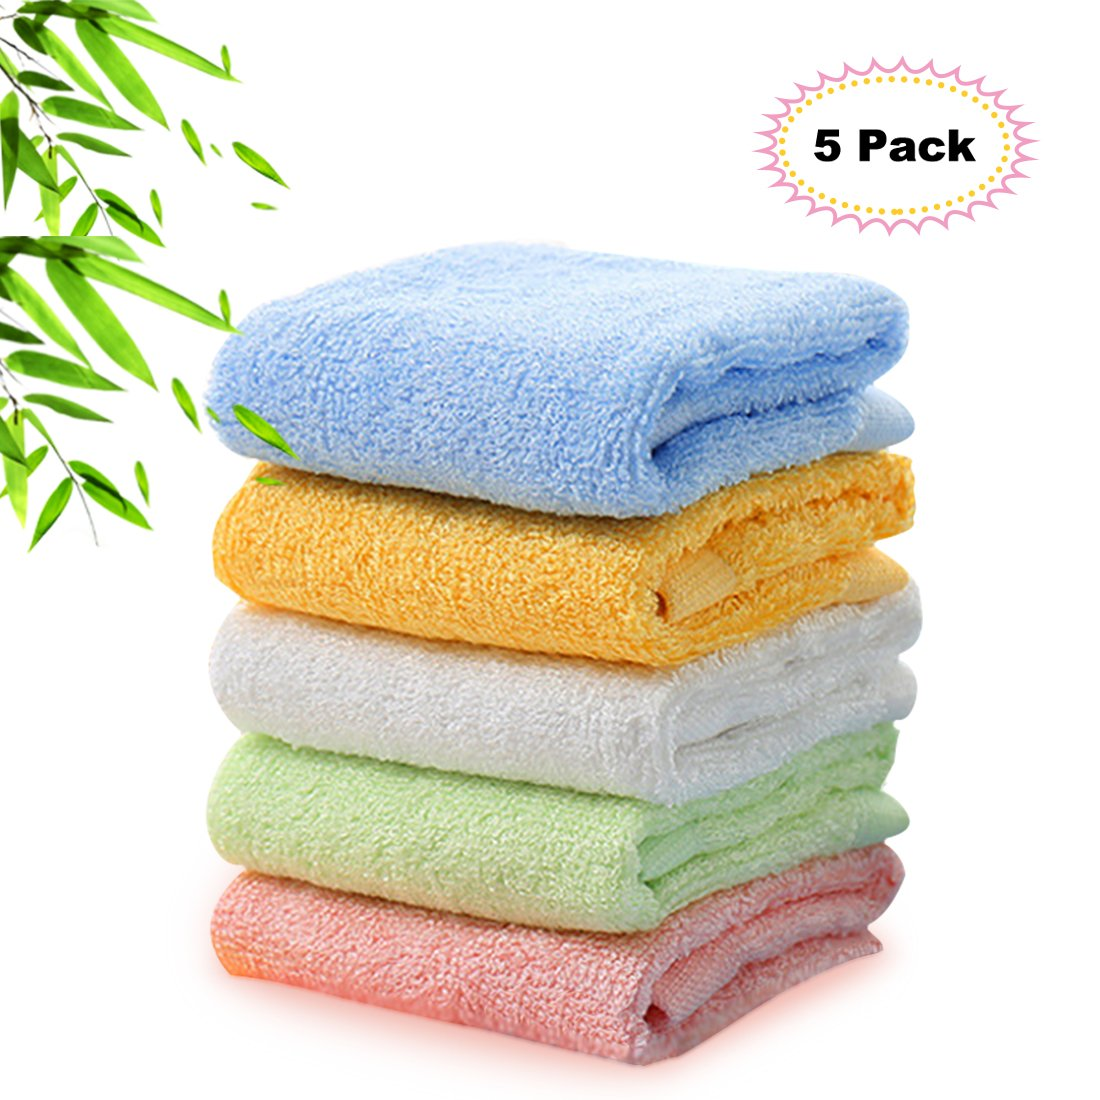 Kyapoo Bamboo Baby Washcloths Natural Face Towels Ultra Soft Hypoallergenic Perfect for Sensitive Skin Reusable Wipes 5 Pack